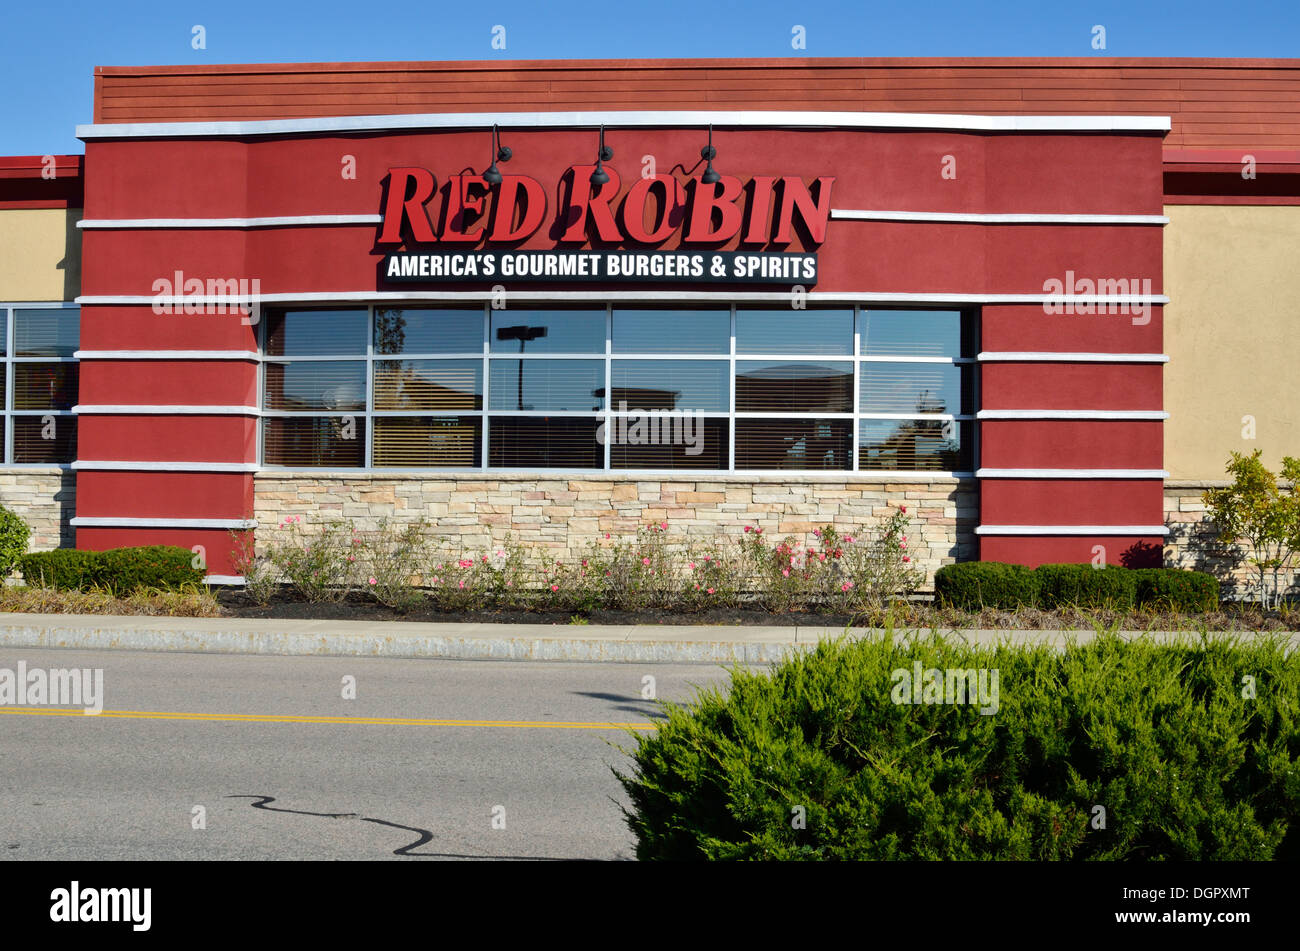 Exterior of Red Robin Restaurant with sign Plymouth, Massachusetts USAUSA - Stock Image